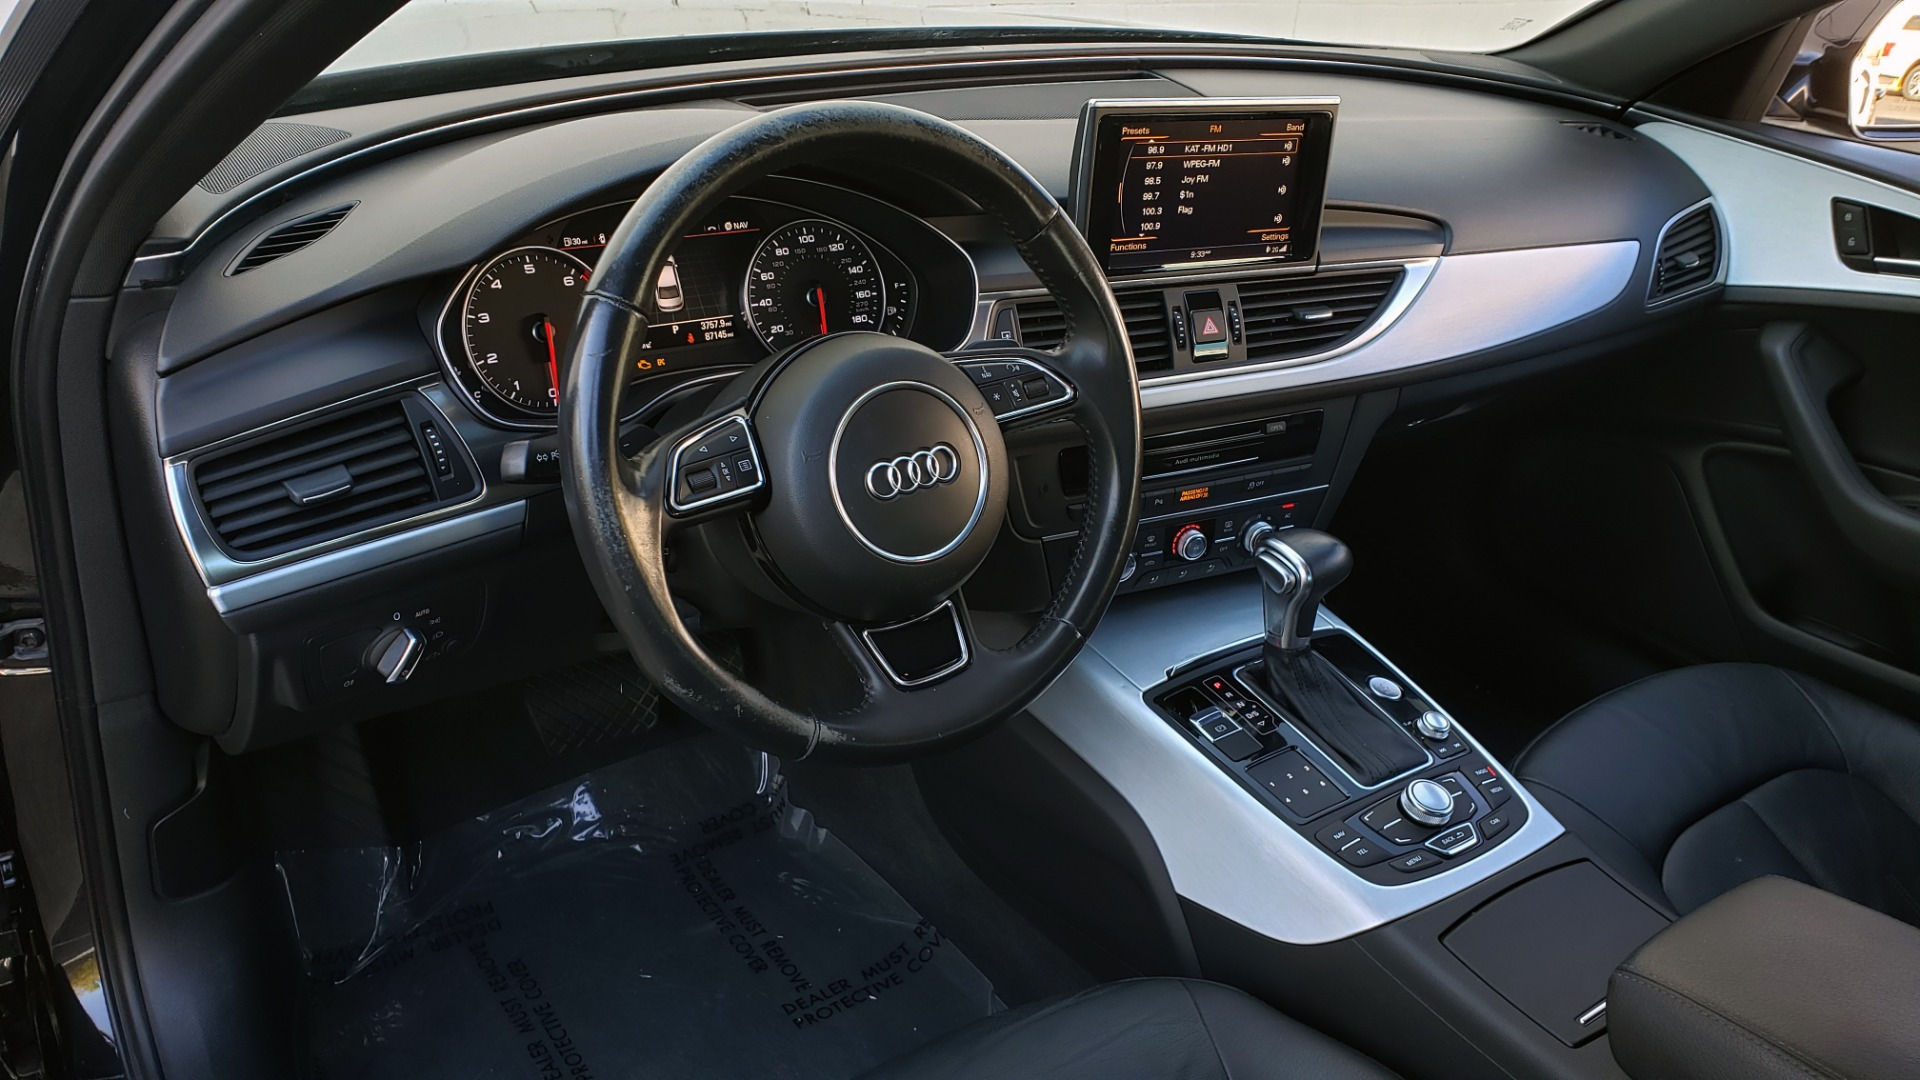 Used 2012 Audi A6 2.0T PREMIUM PLUS / NAV / SNRF / CVT TRANS / REARVIEW for sale Sold at Formula Imports in Charlotte NC 28227 38